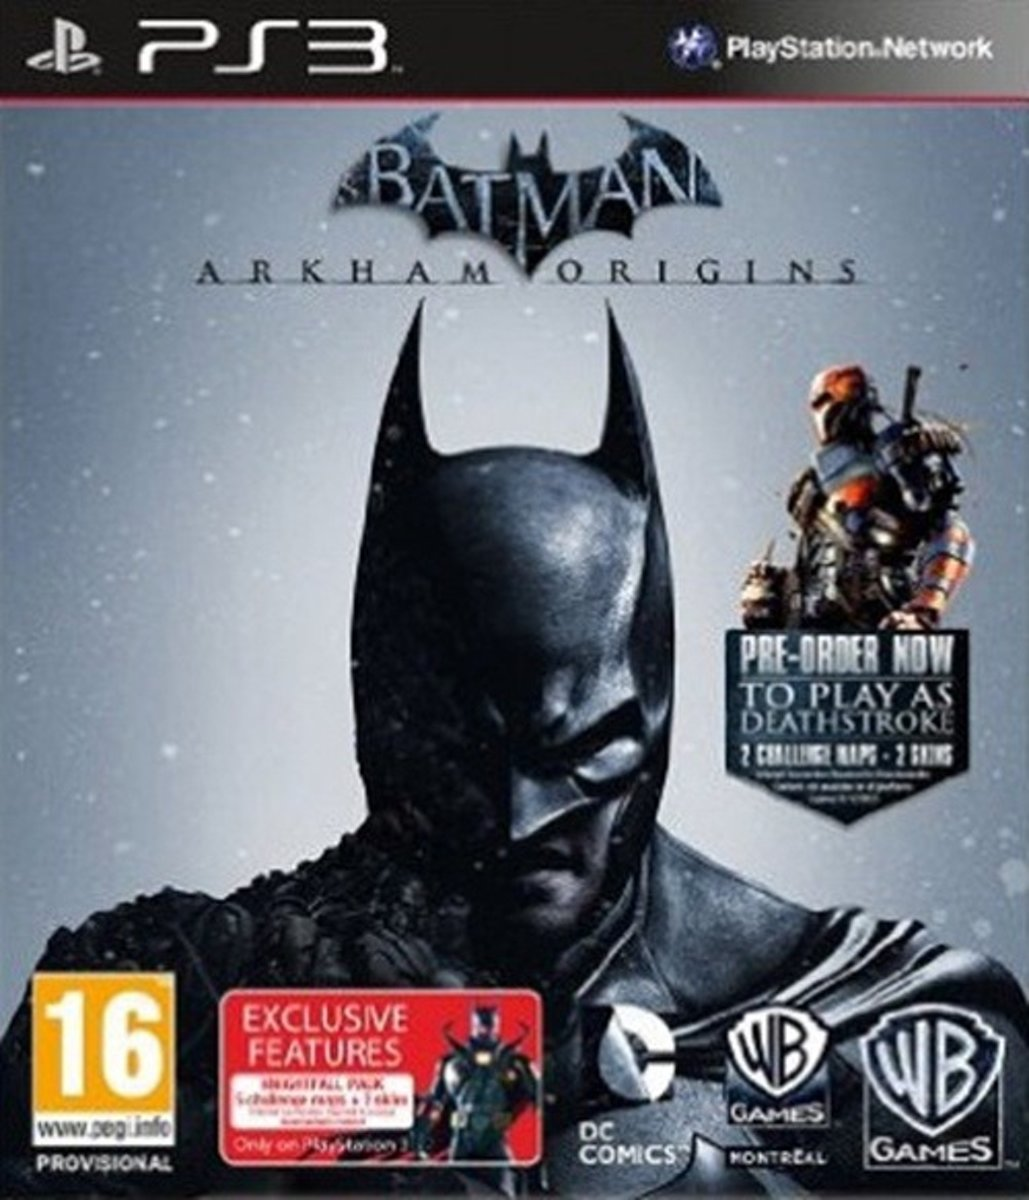 Batman Arkham Origins (Deathstroke) /PS3 kopen